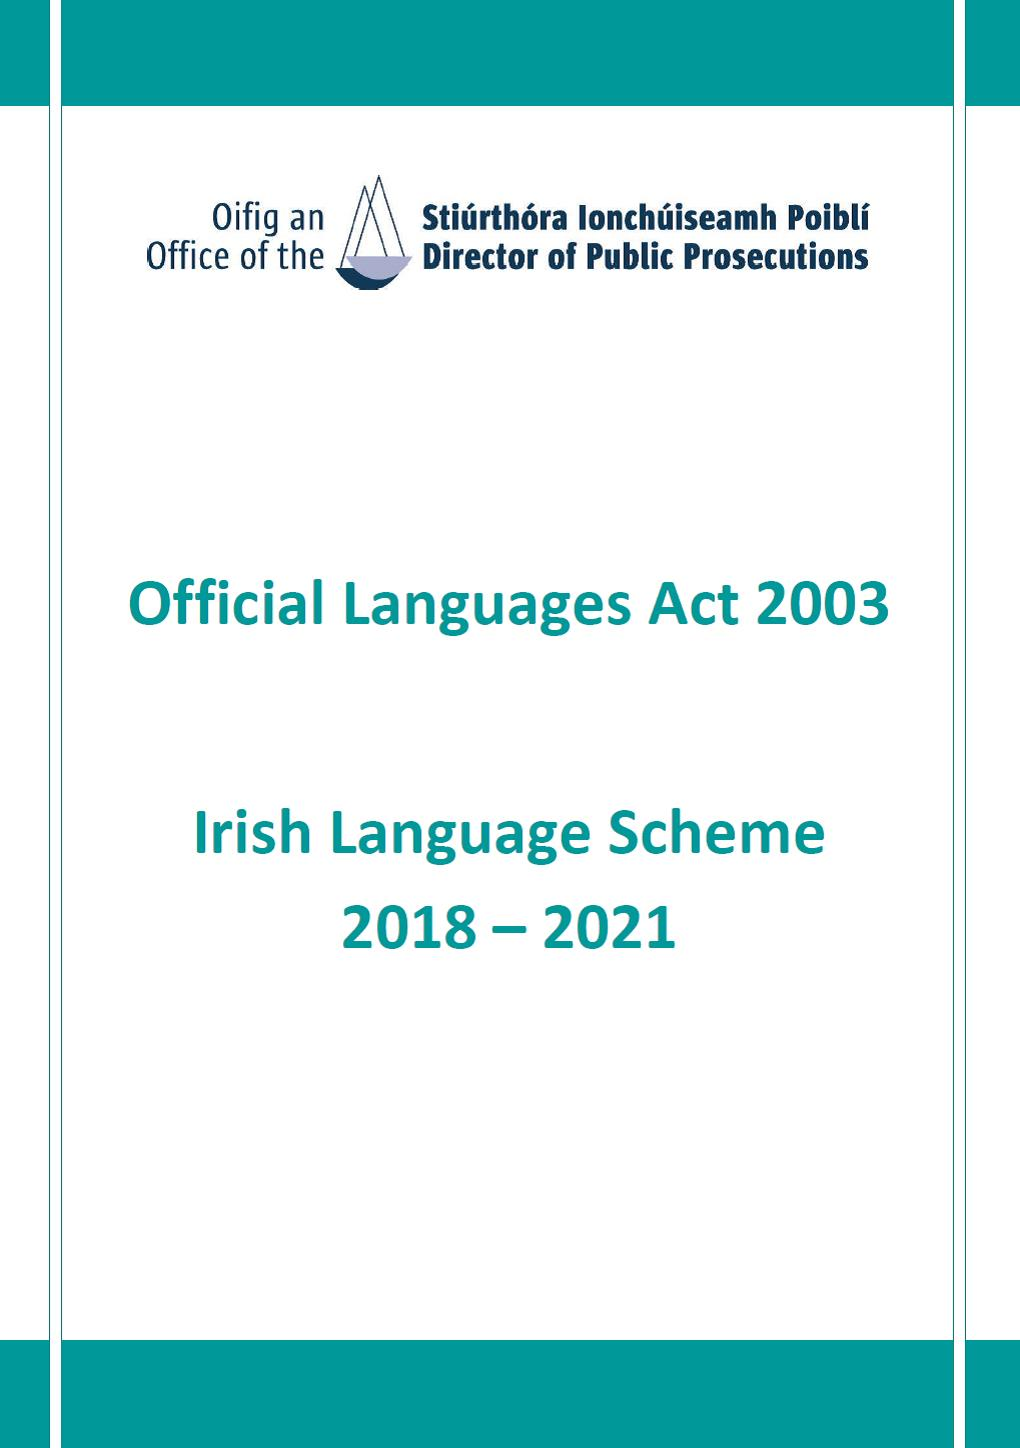 Irish Language Scheme 2018-2021 (PDF)